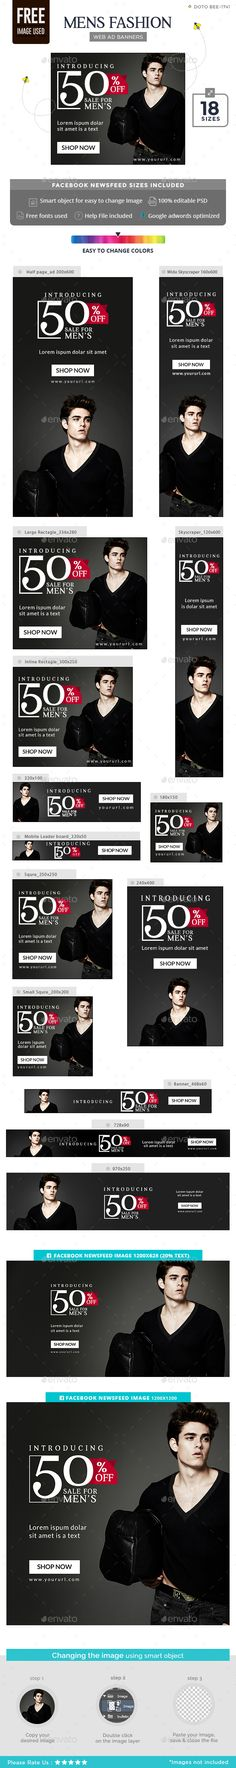 Men Fashion Banners - #Banners & Ads #Web Elements Download here: https://graphicriver.net/item/men-fashion-banners/18566185?ref=alena994